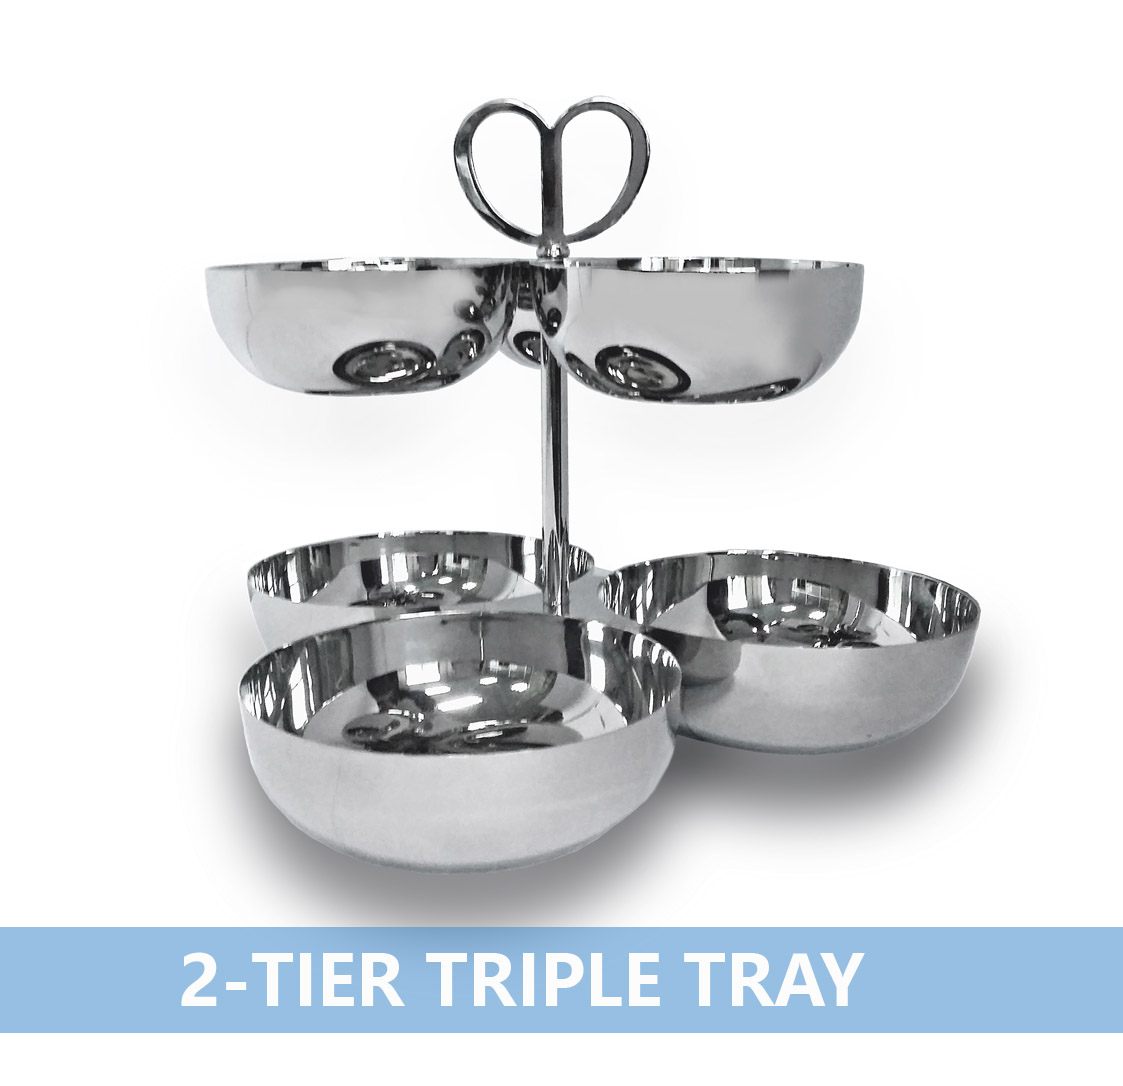 两层三格碗2-tier Triple Tray